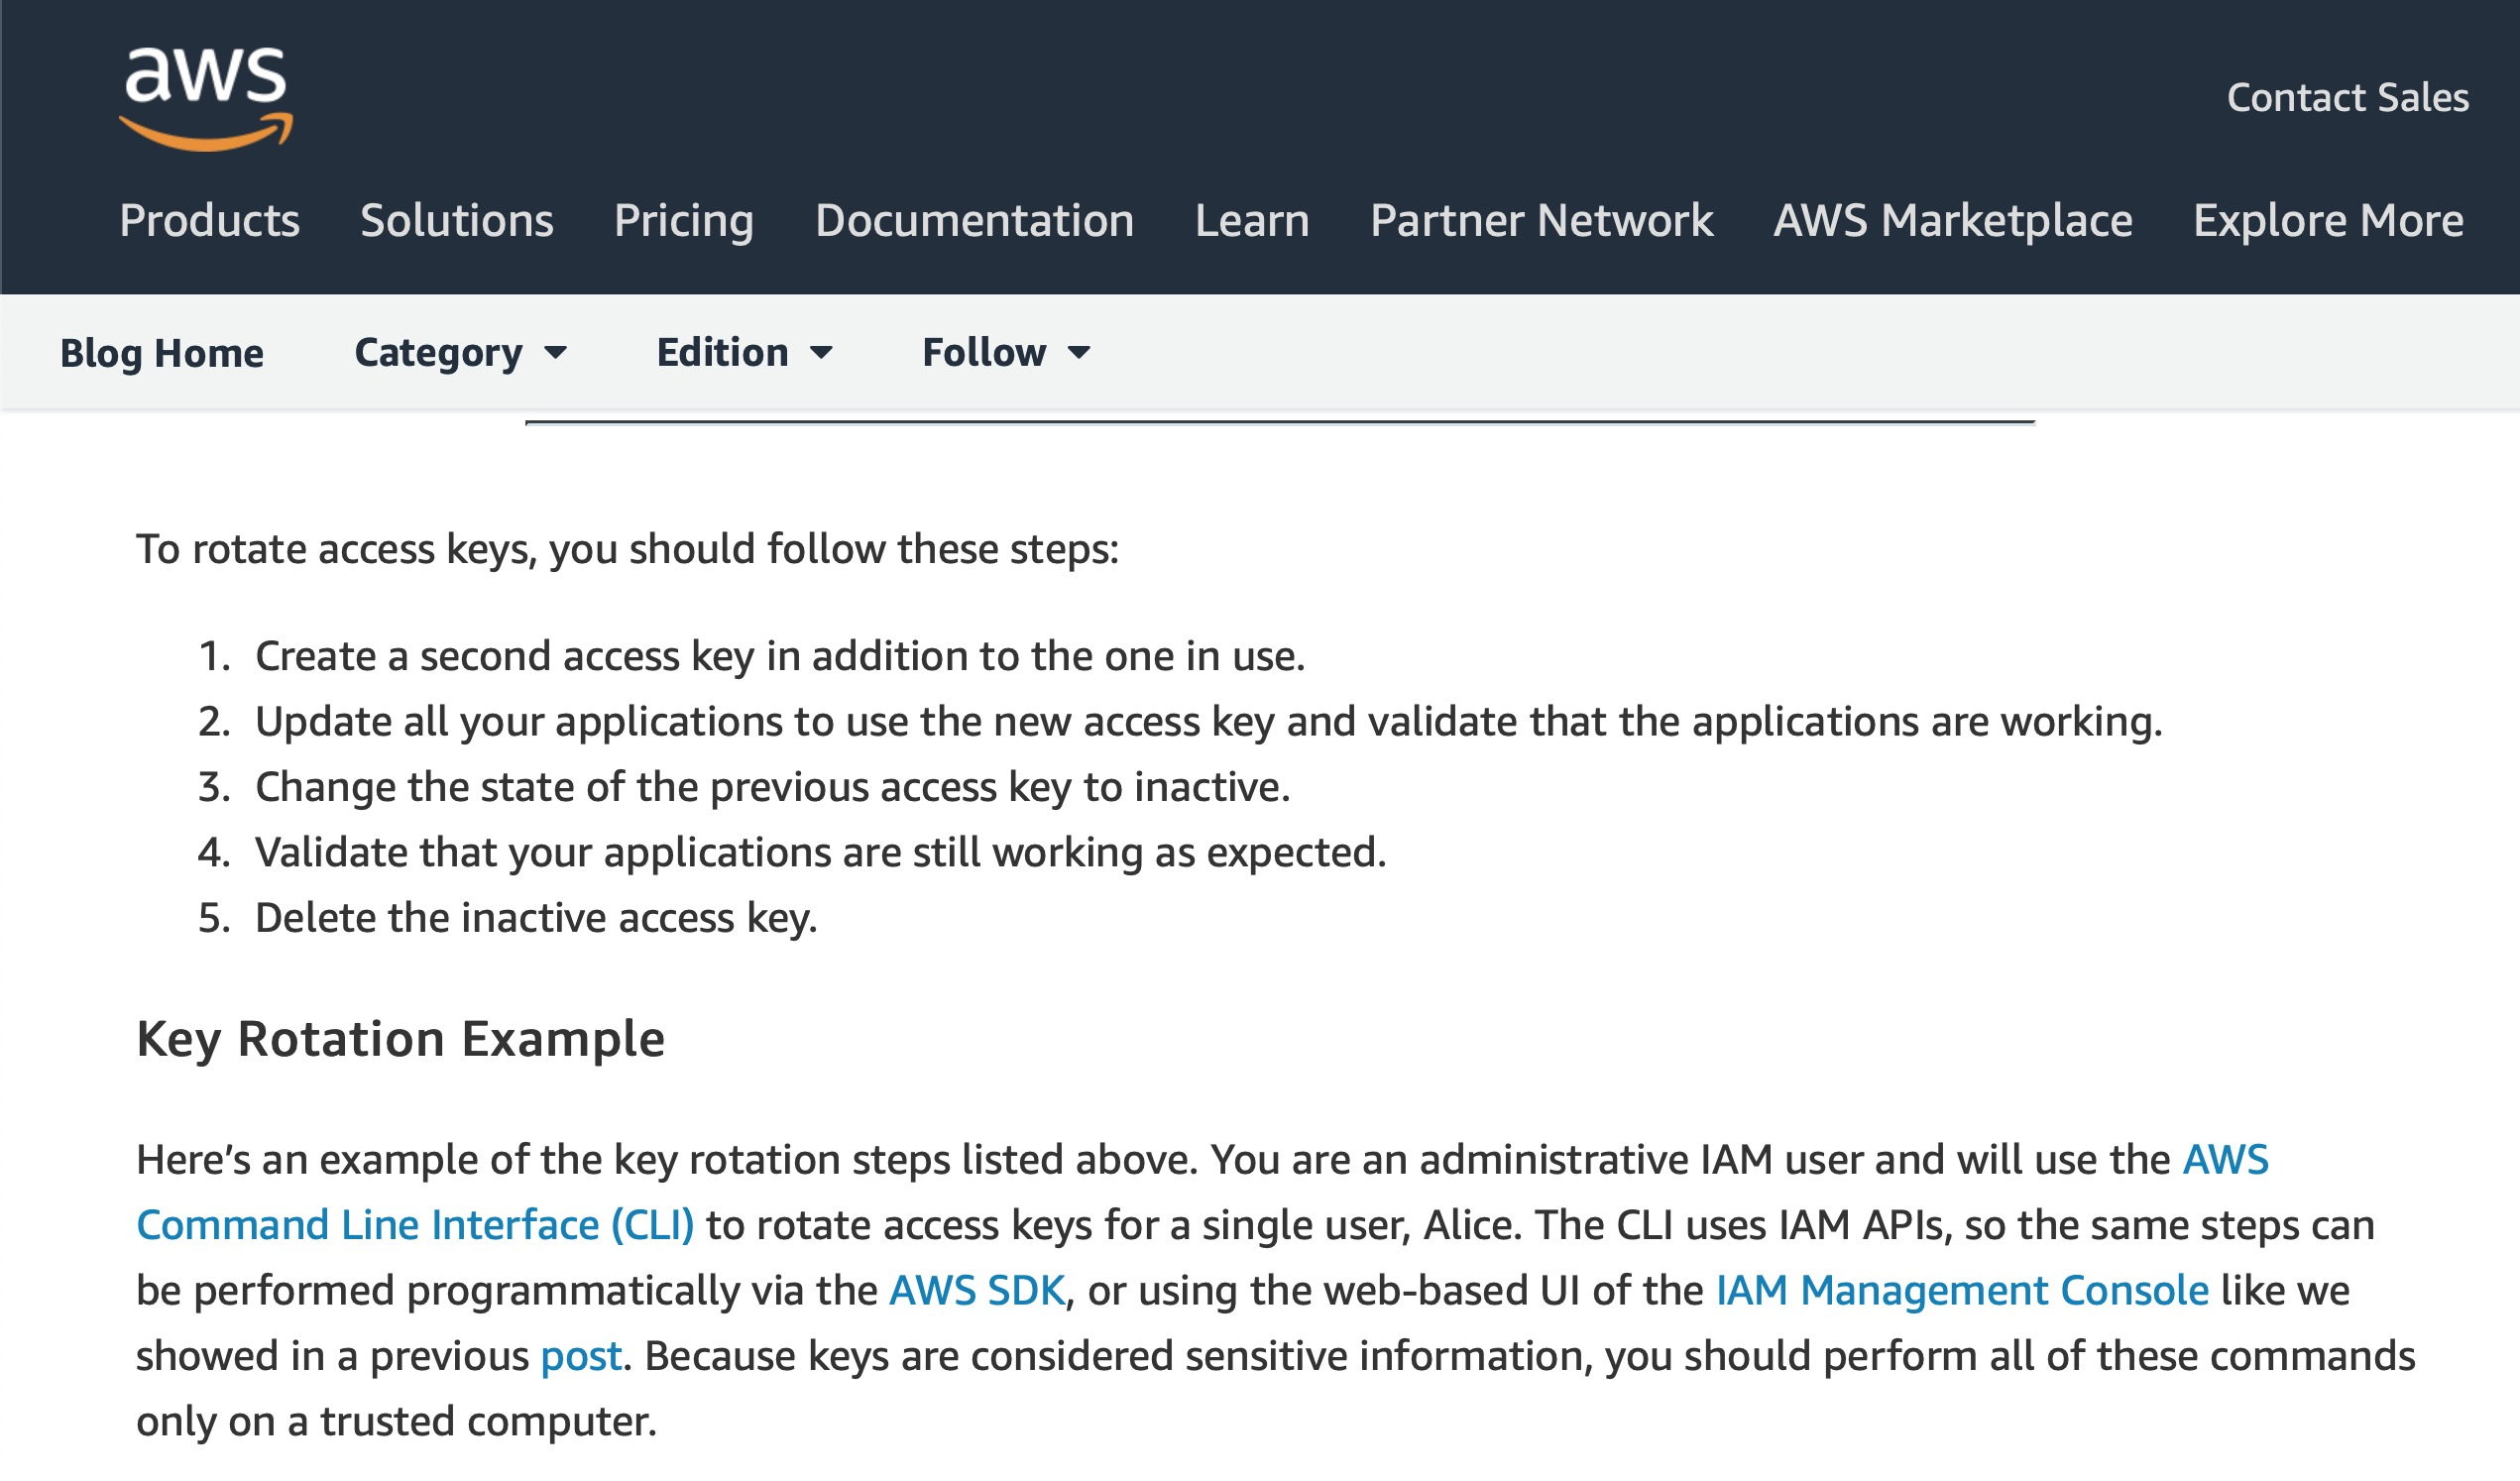 image of aws instructions to rotate keys